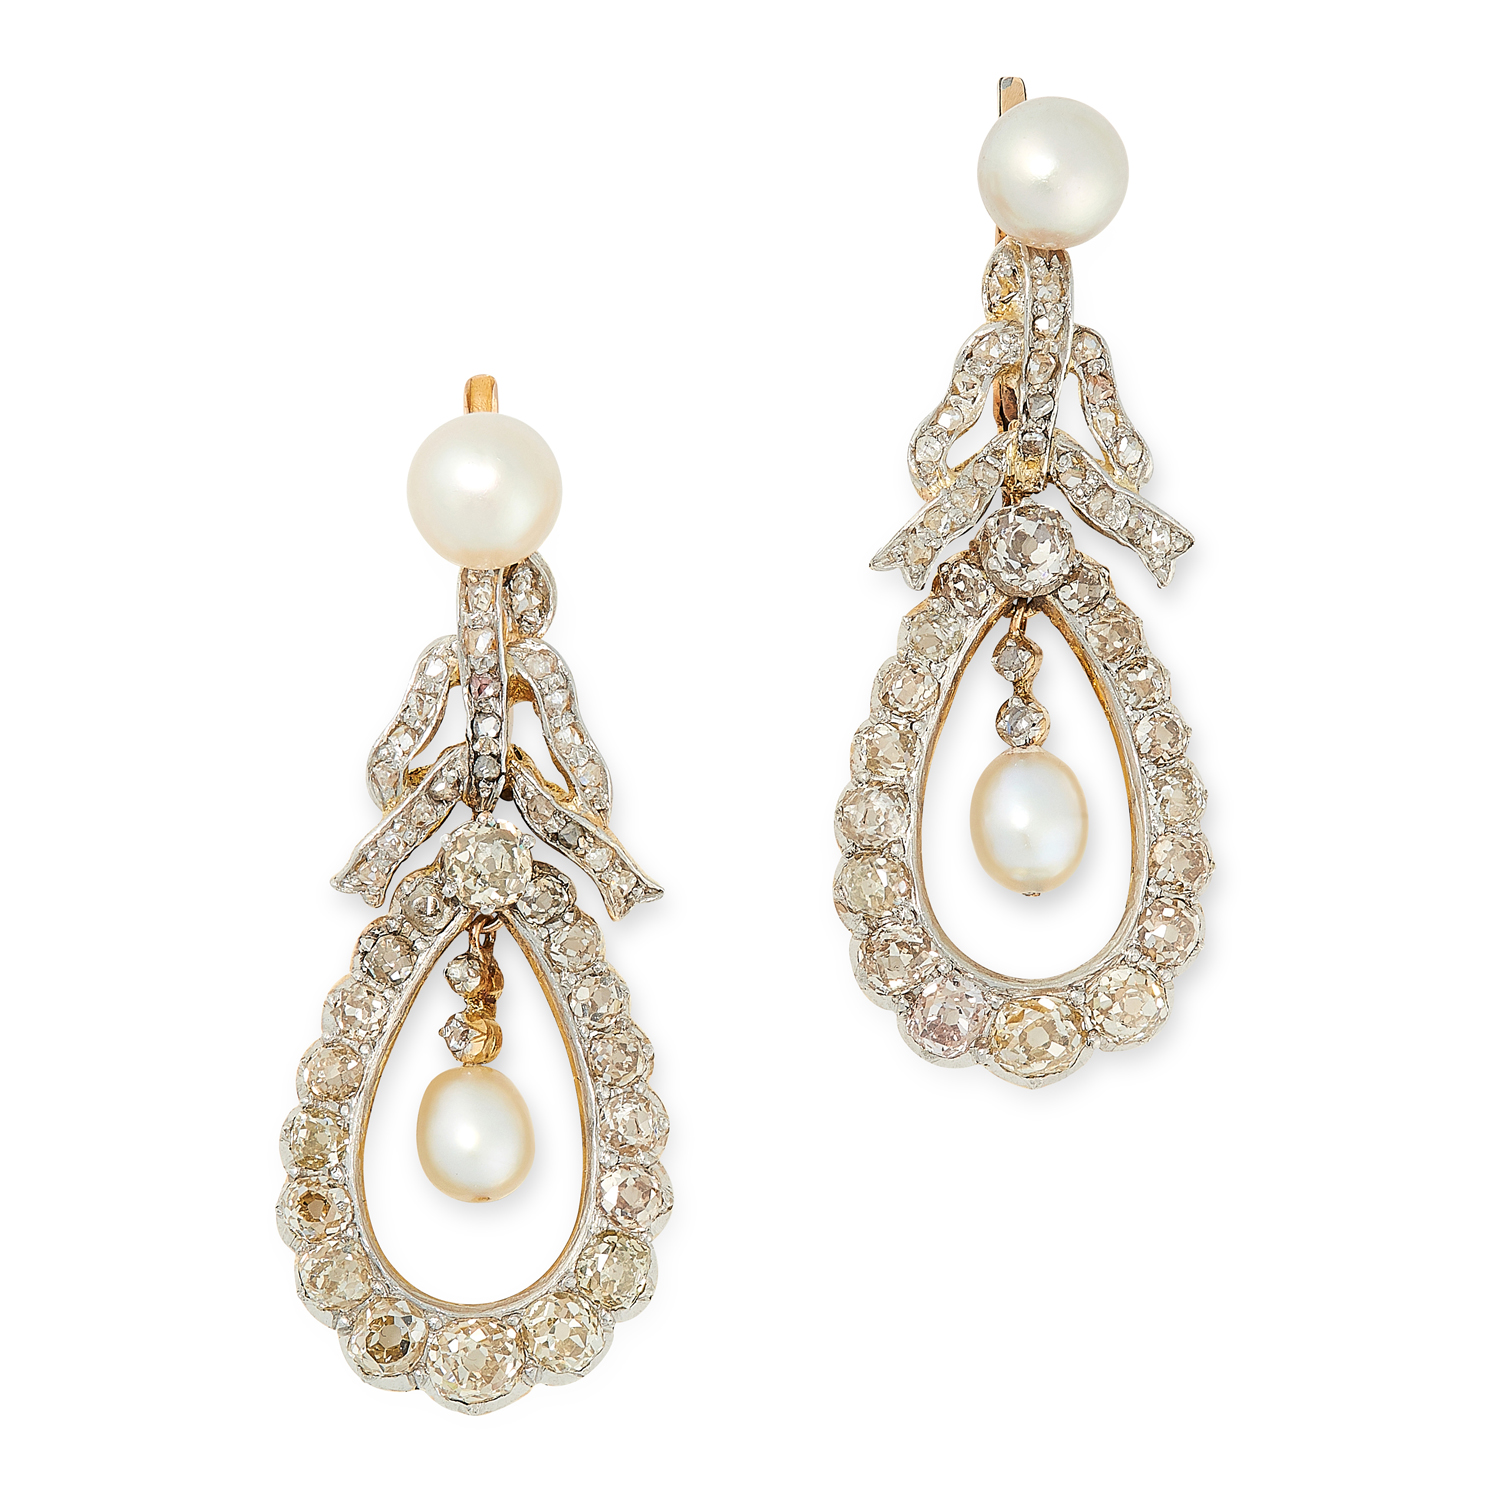 A PAIR OF PEARL AND DIAMOND DROP EARRINGS in yellow gold and silver, with rose cut diamond set bow